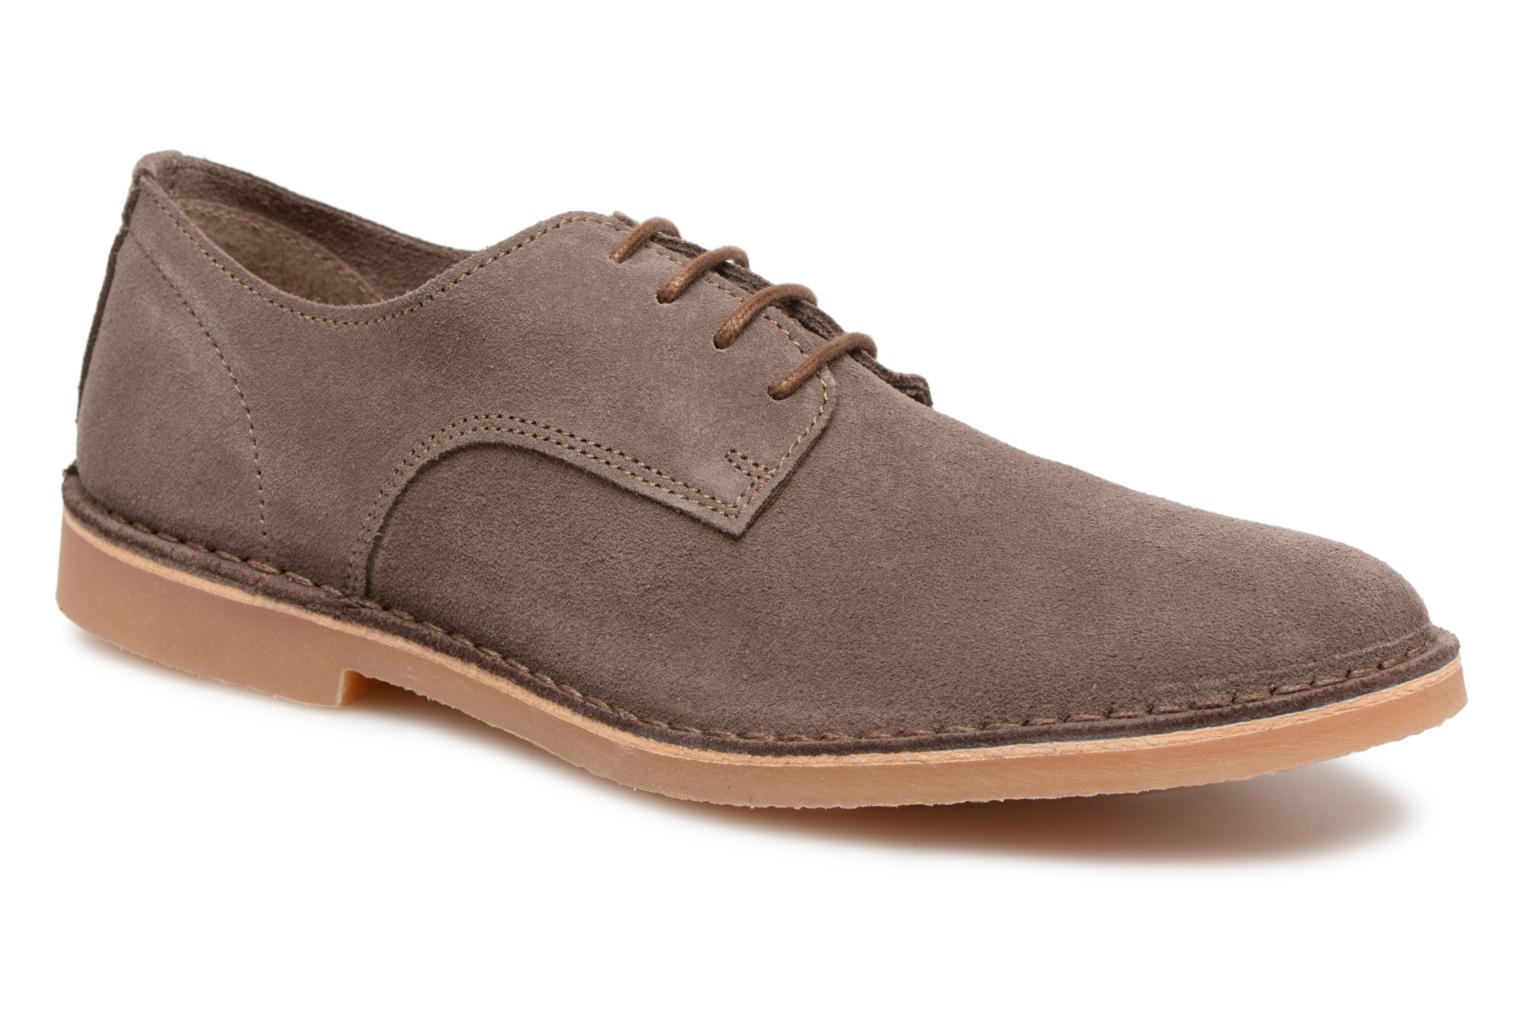 Marques Chaussure homme Selected Homme homme Royce 2 Walnut